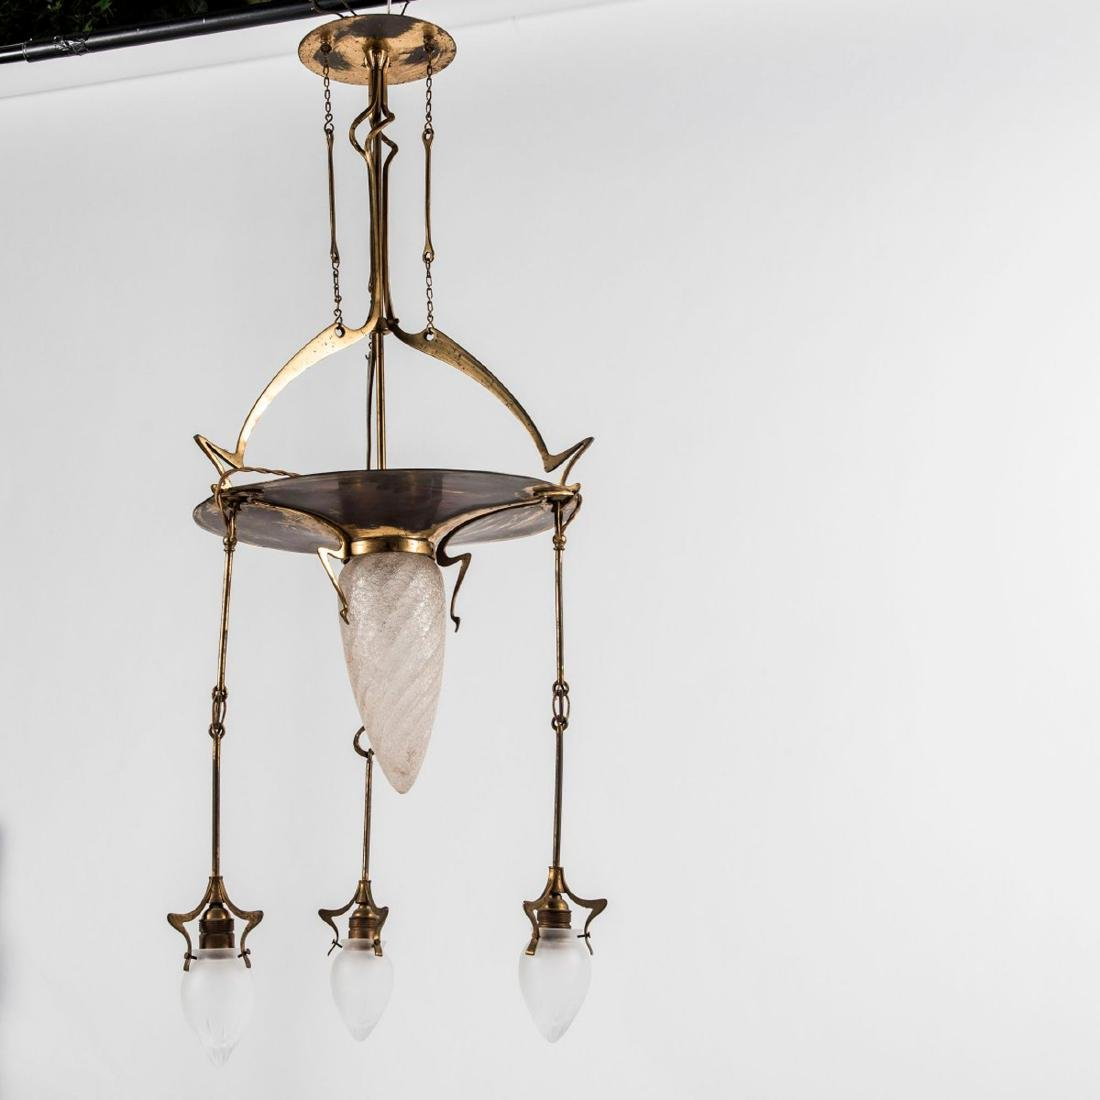 Ceiling light, c. 1910